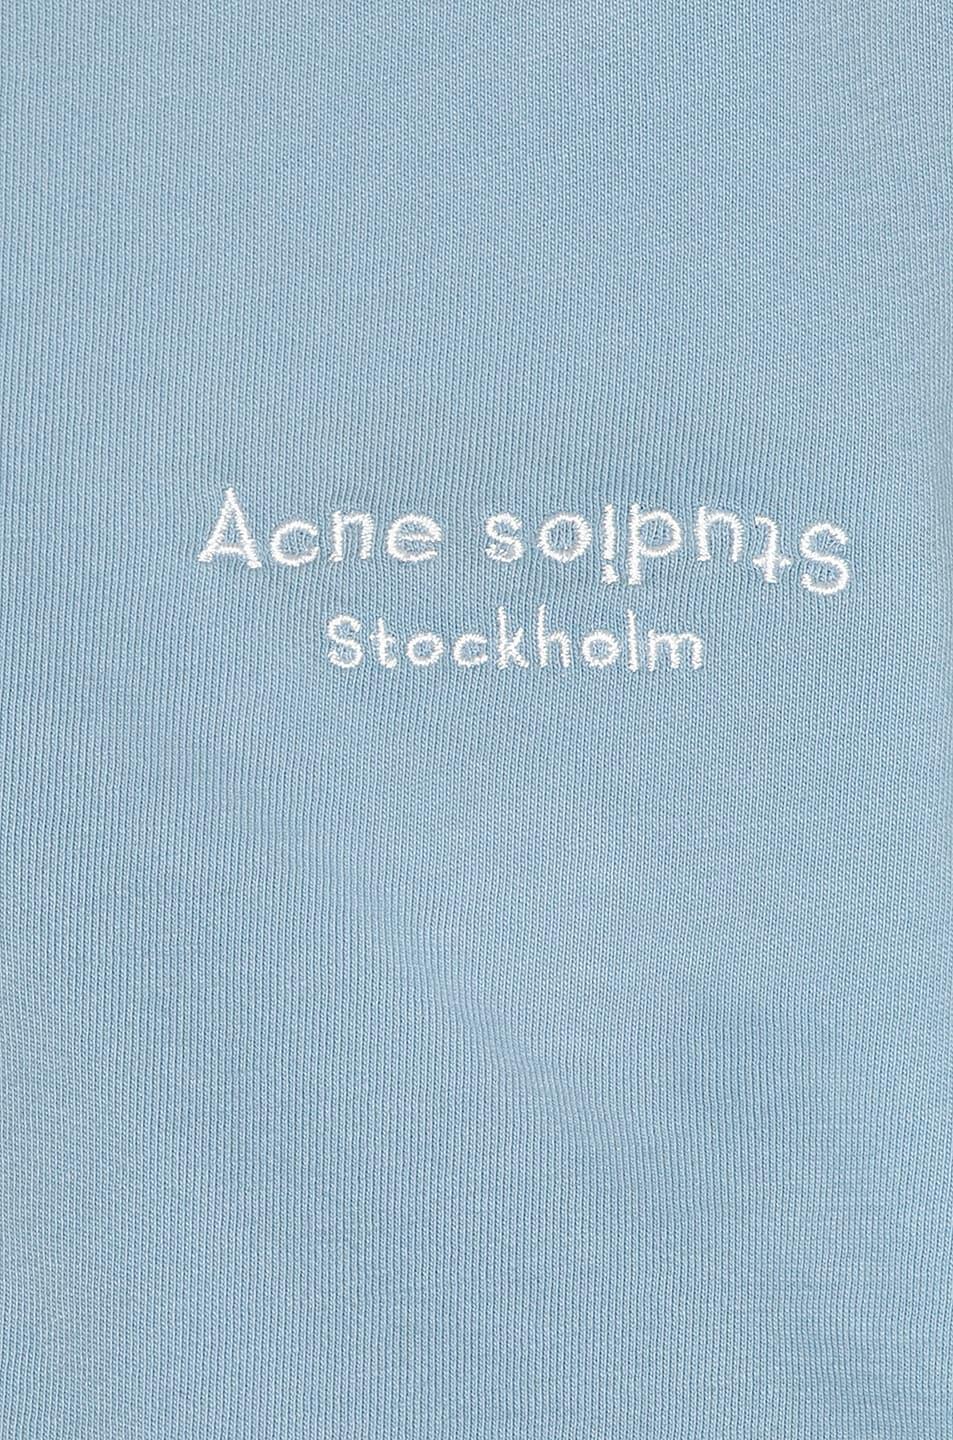 Image 5 of Acne Studios Elvana T Shirt in Dusty Blue